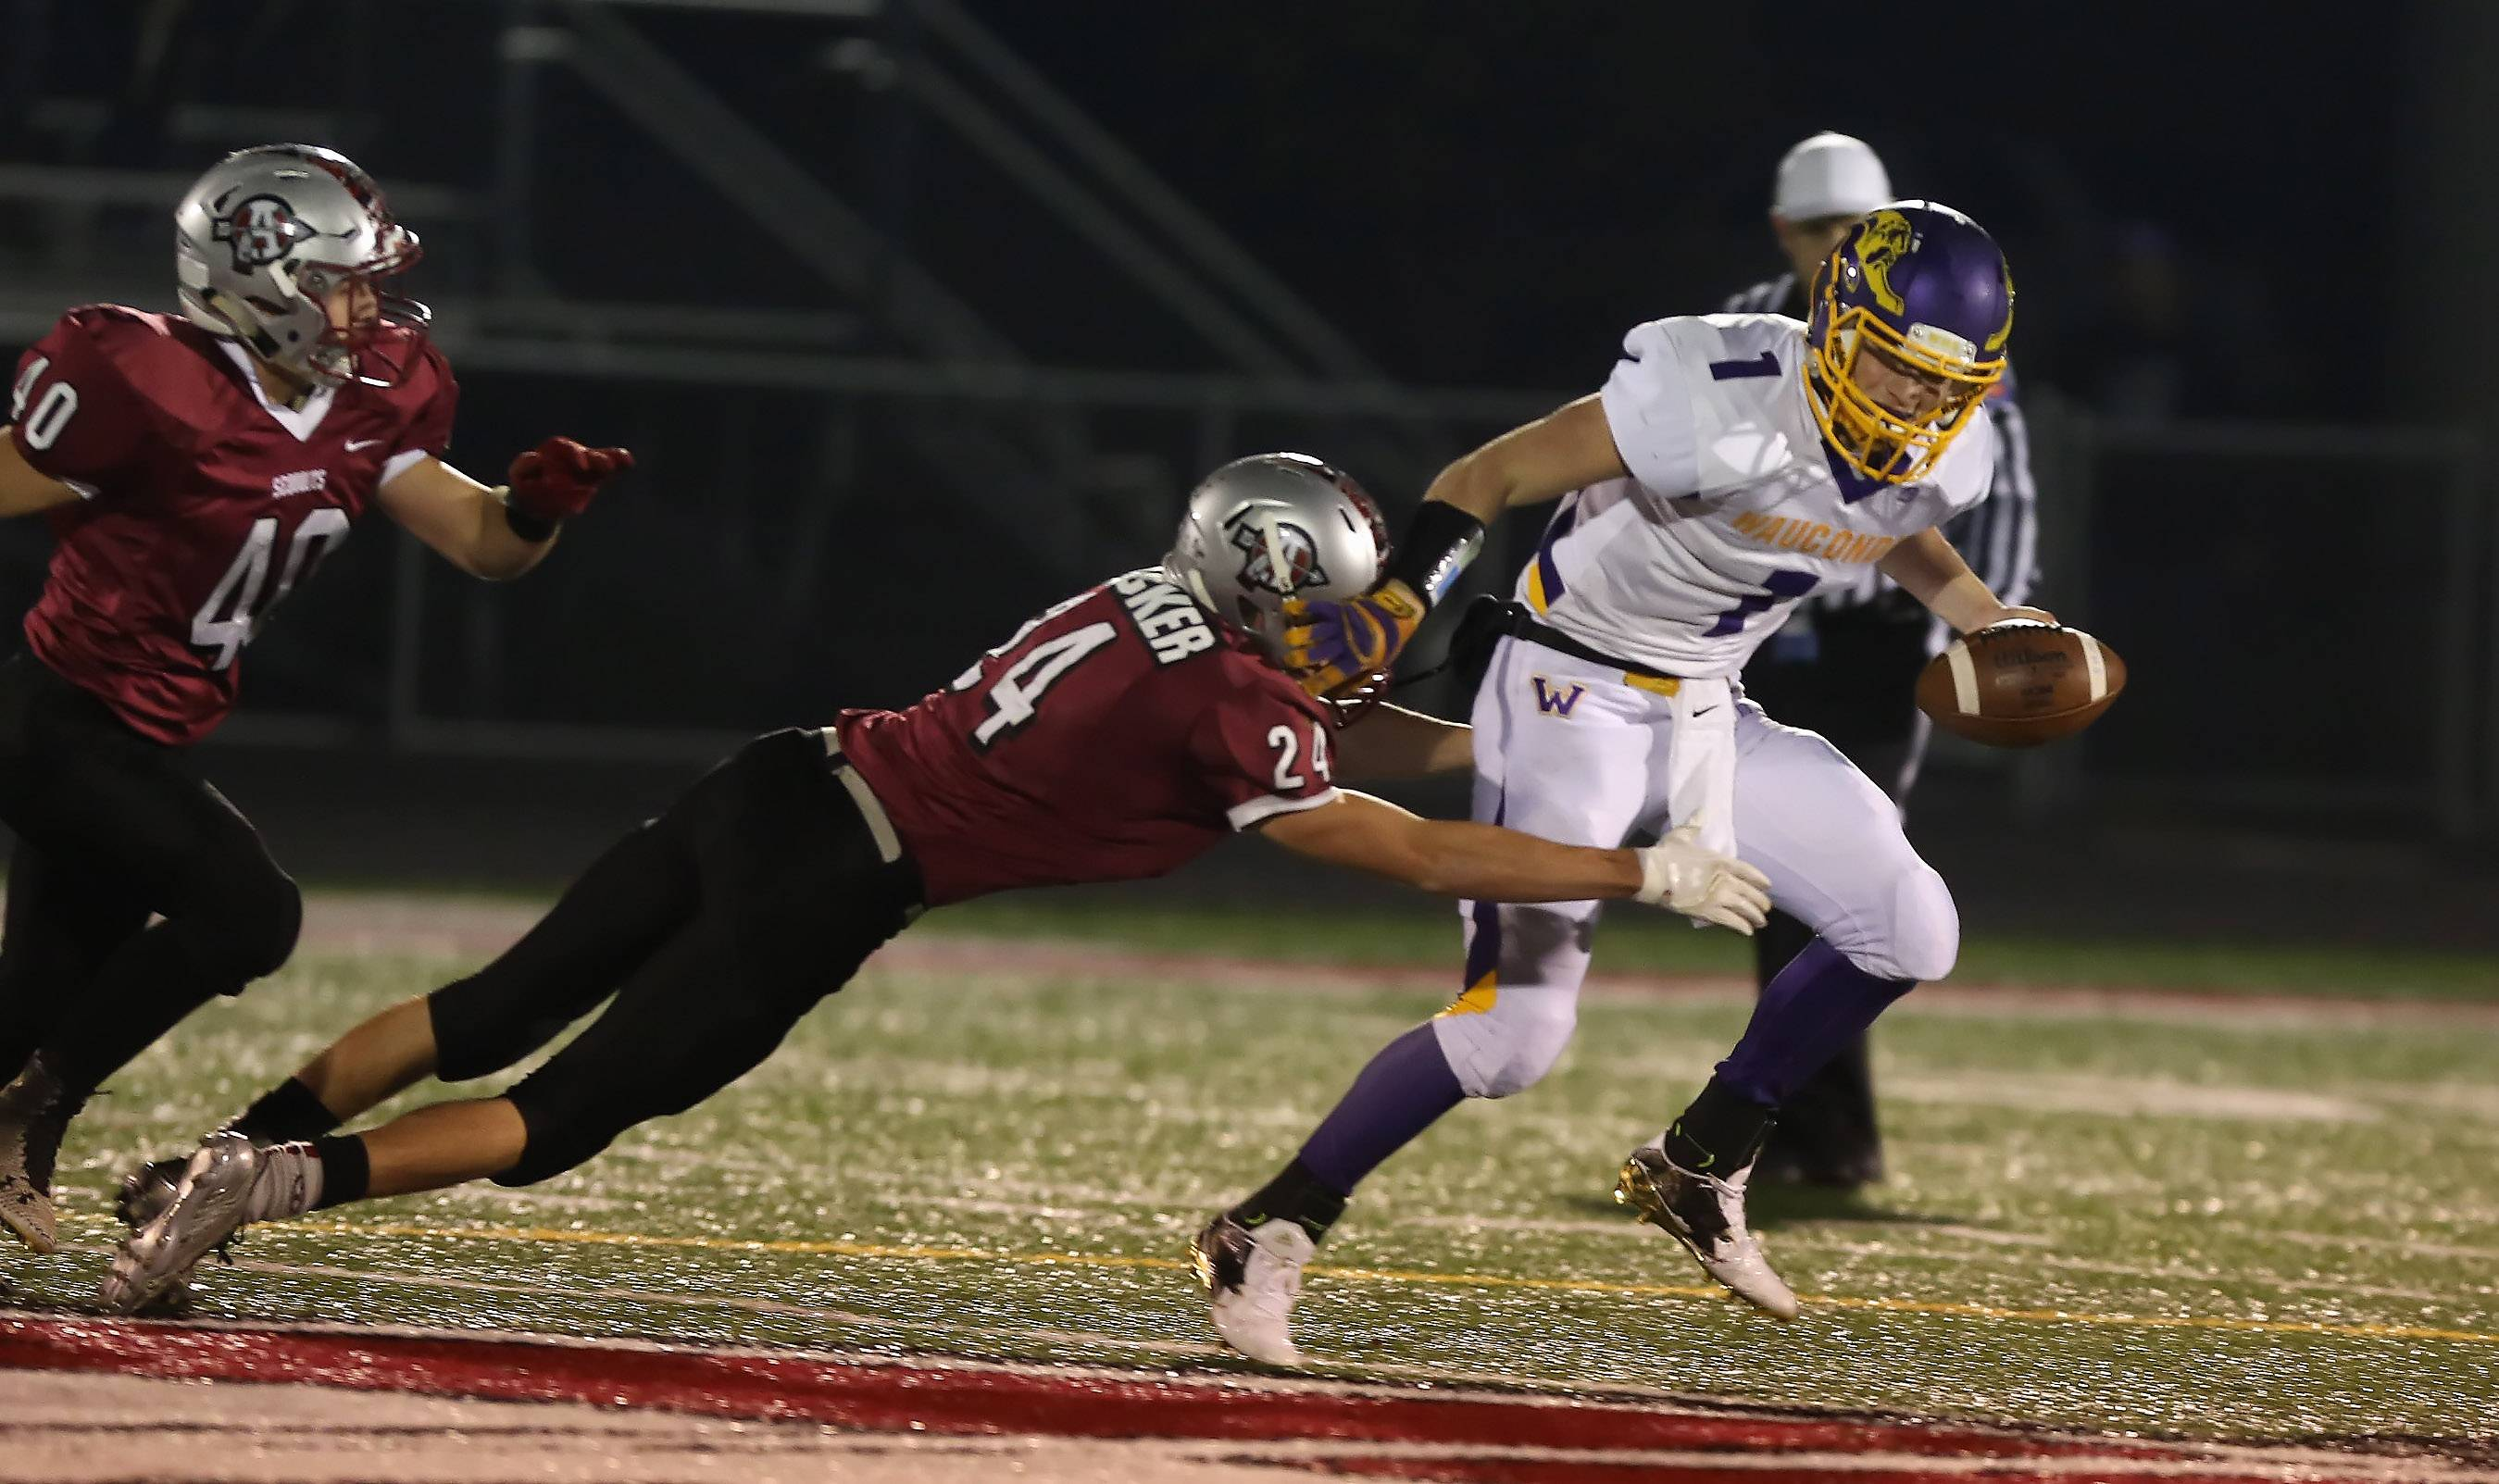 Antioch defender Bill Becker sacks Wauconda quarterback Antonio Acosta in the first half at Antioch on Friday.